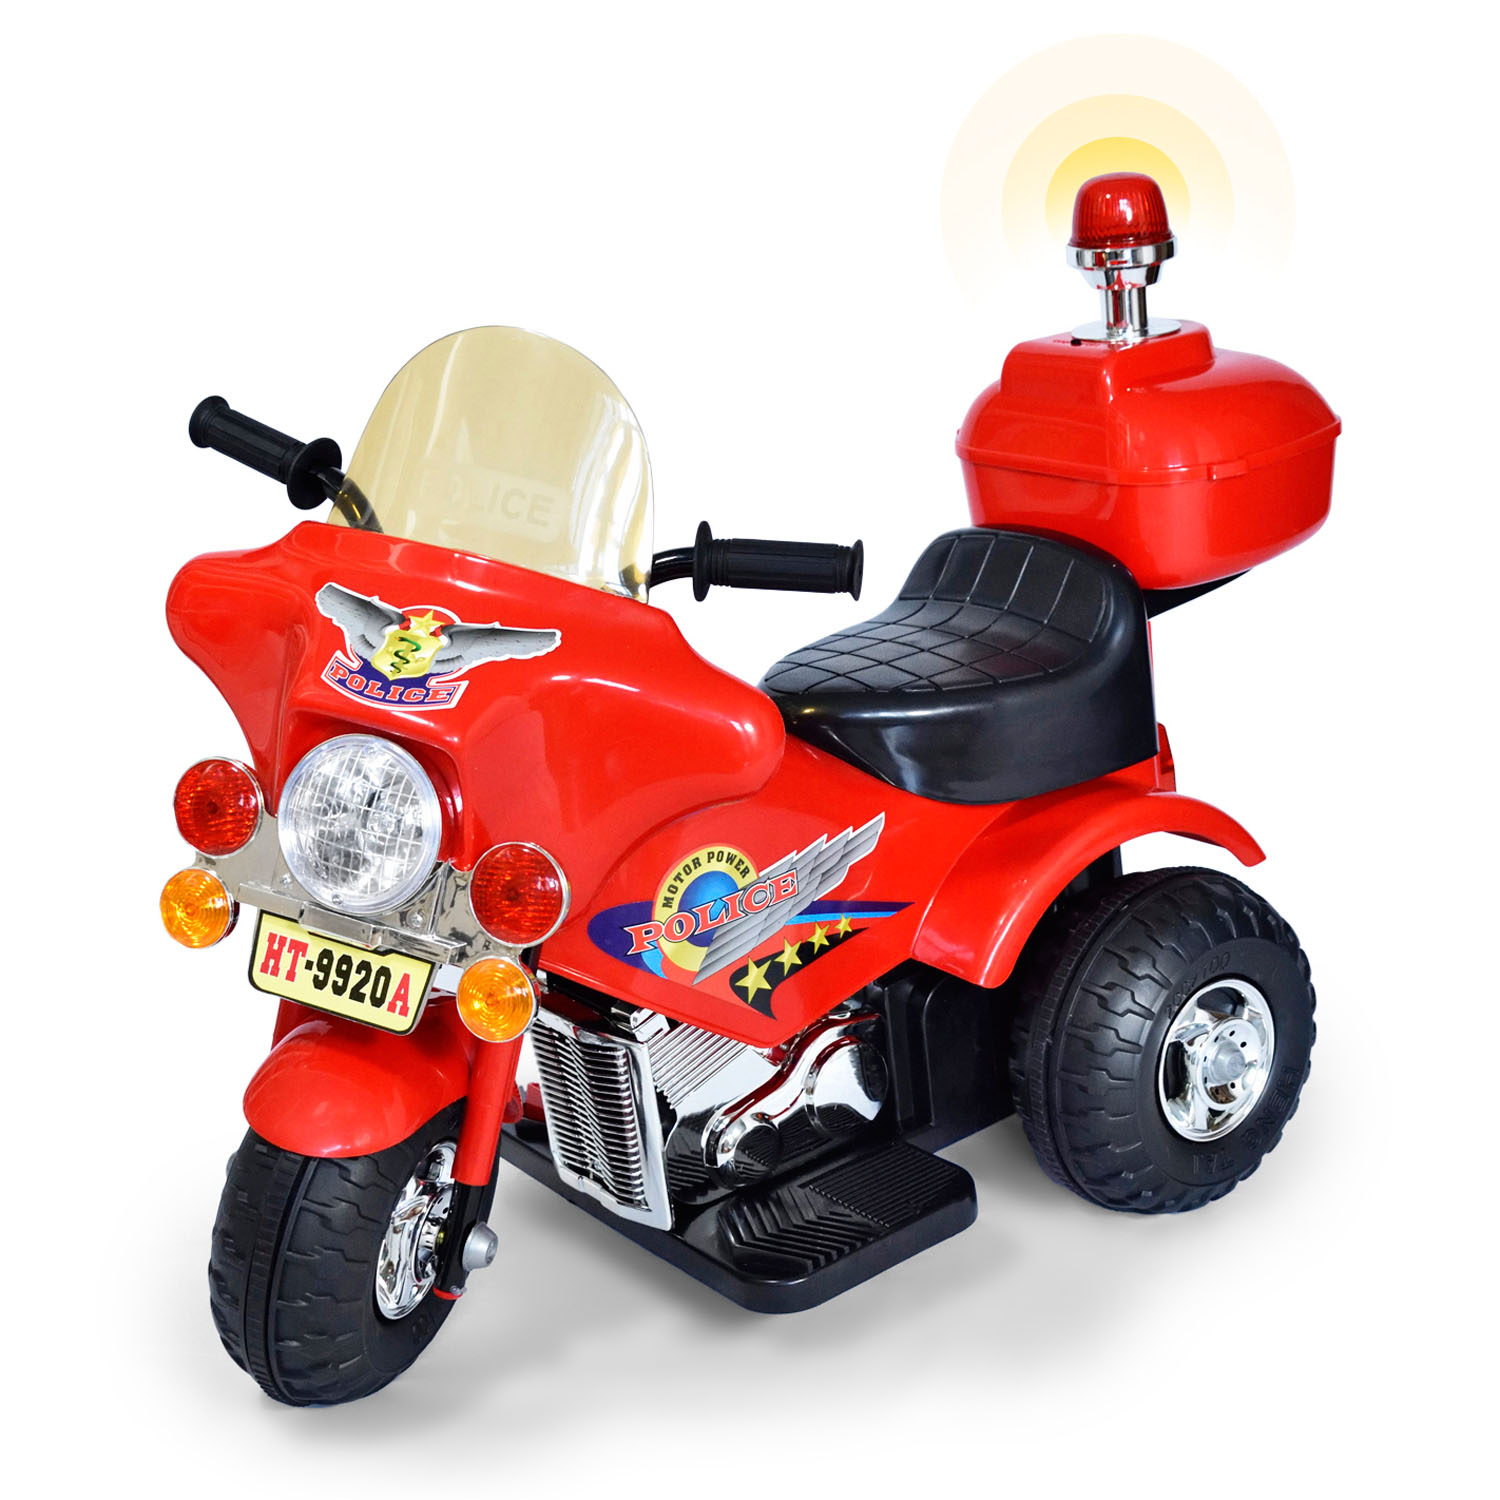 elektro kinder motorrad kinderroller mit akkubetrieb. Black Bedroom Furniture Sets. Home Design Ideas